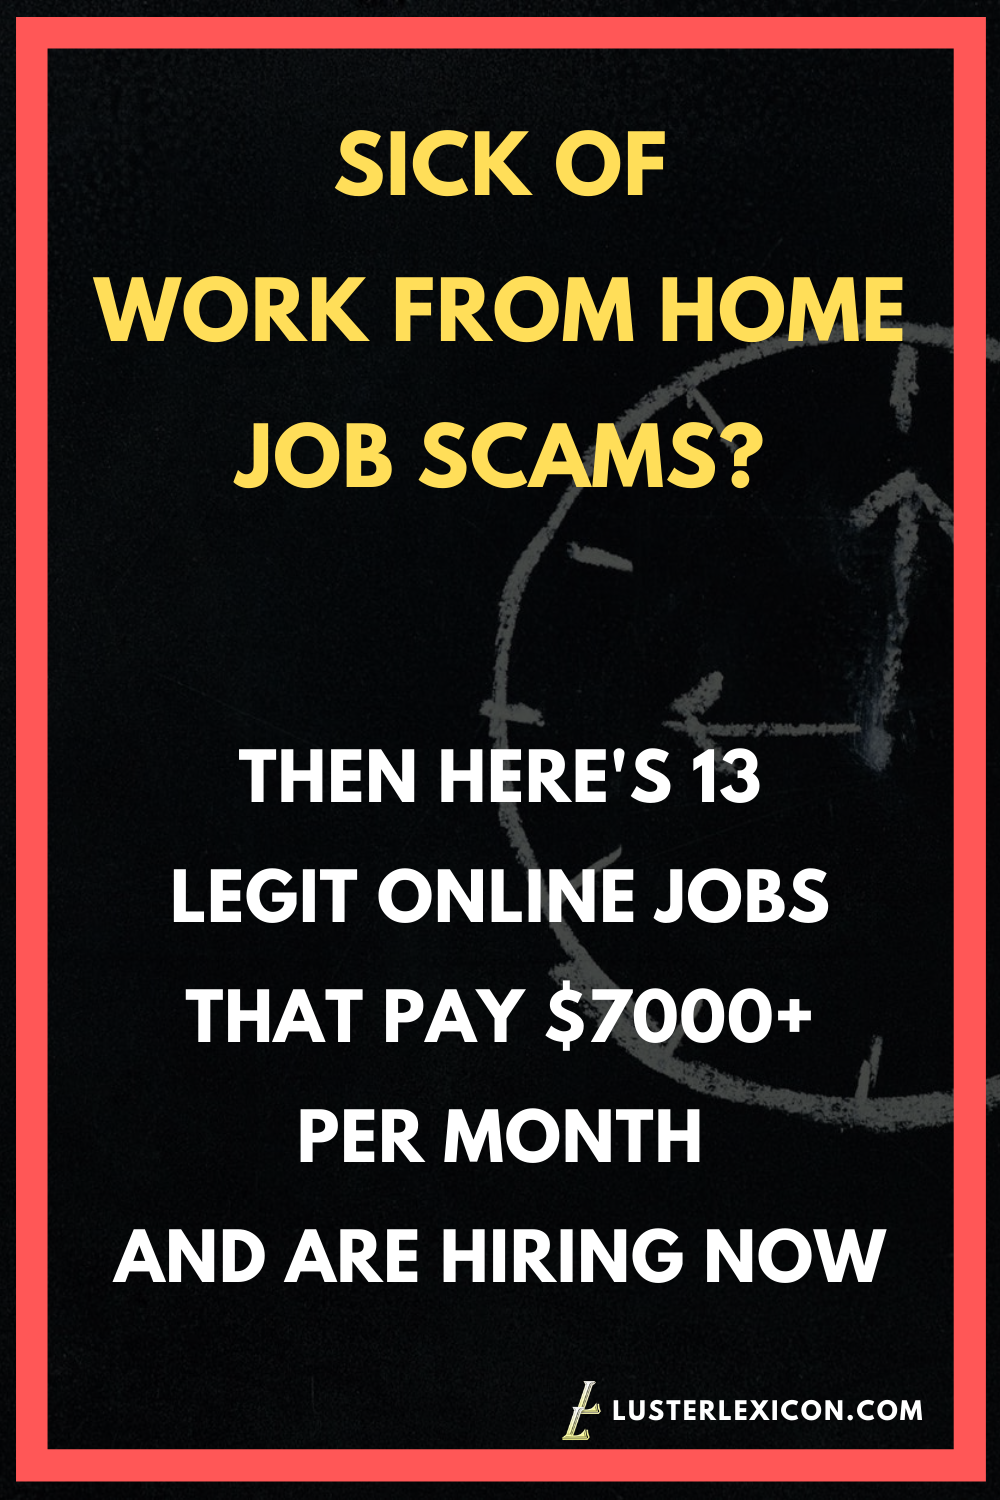 13 LEGIT ONLINE JOBS THAT PAY $7000+ PER MONTH AND